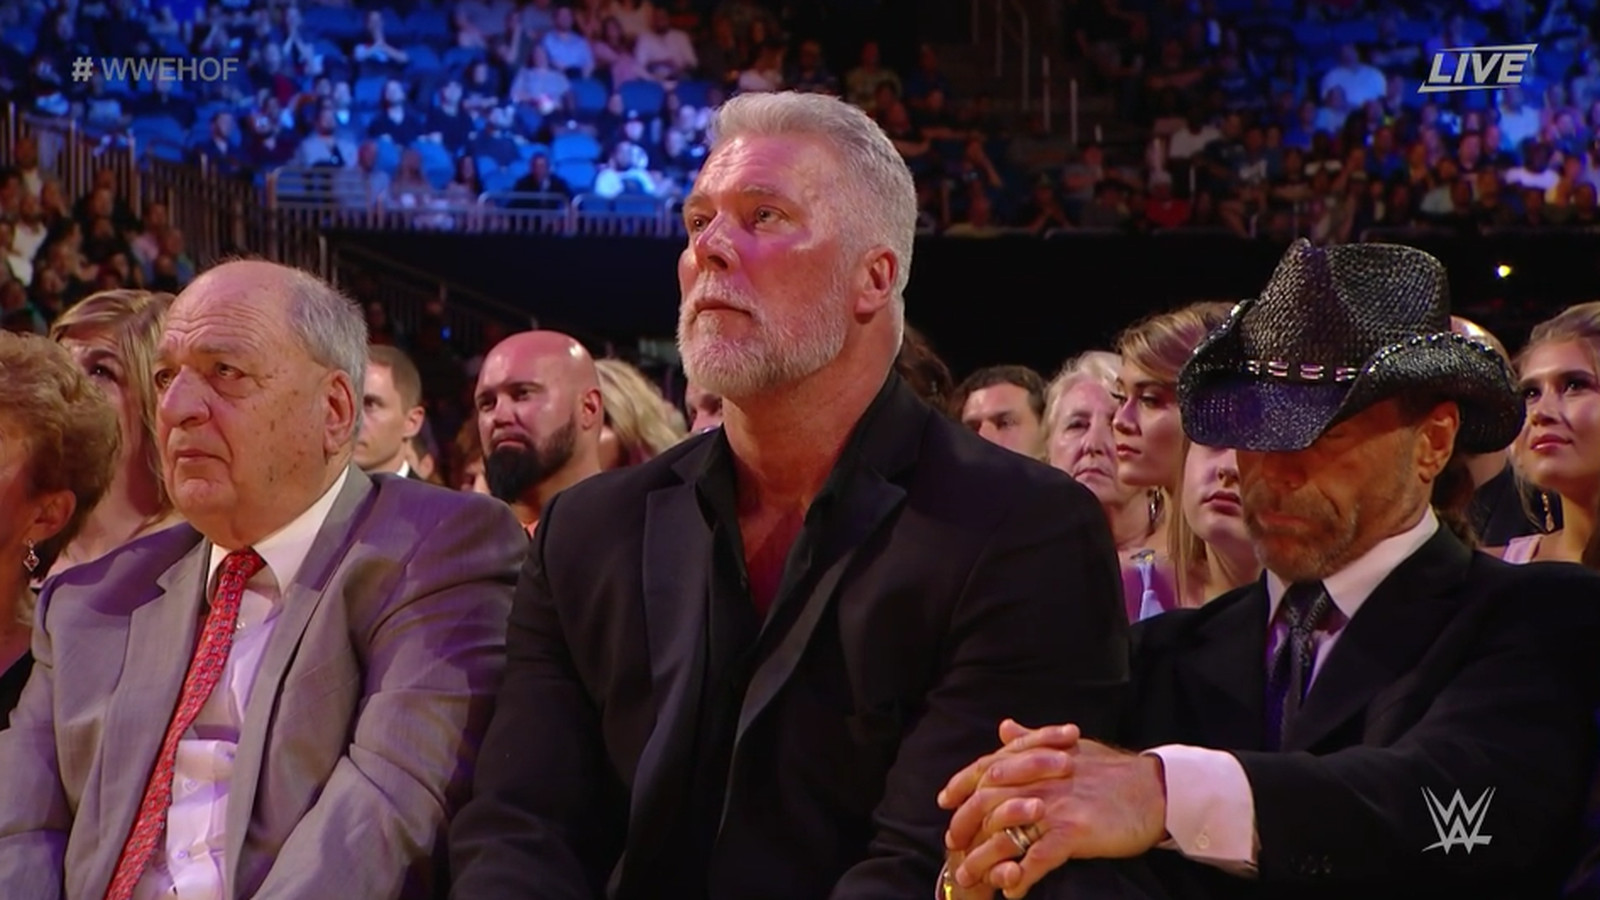 A Very Good Photo Of Shawn Michaels At The Wwe Hall Of